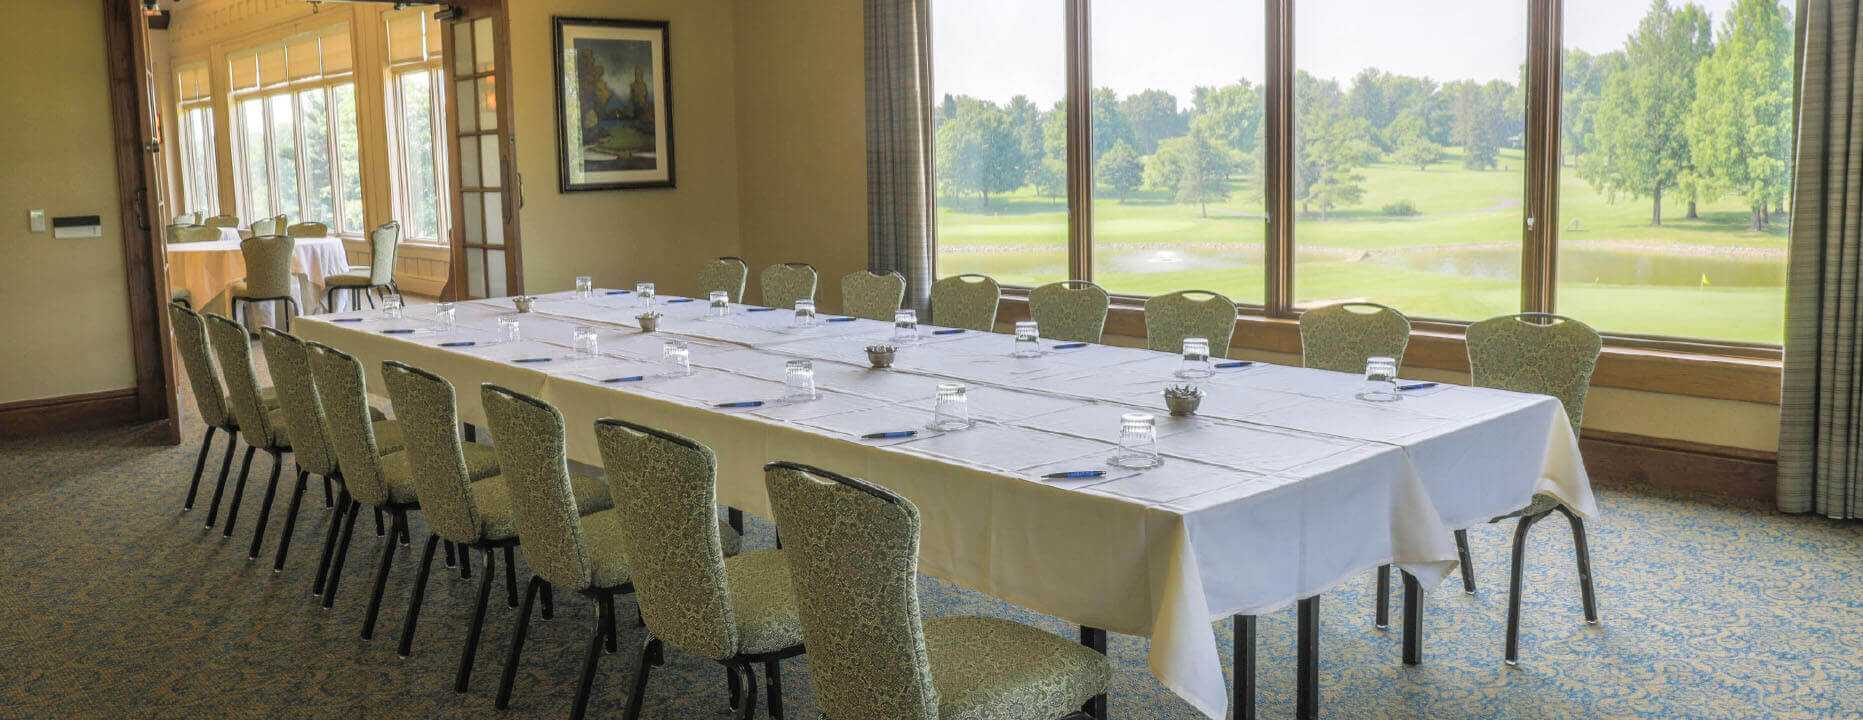 McCarthy Room at Hershey Country Club